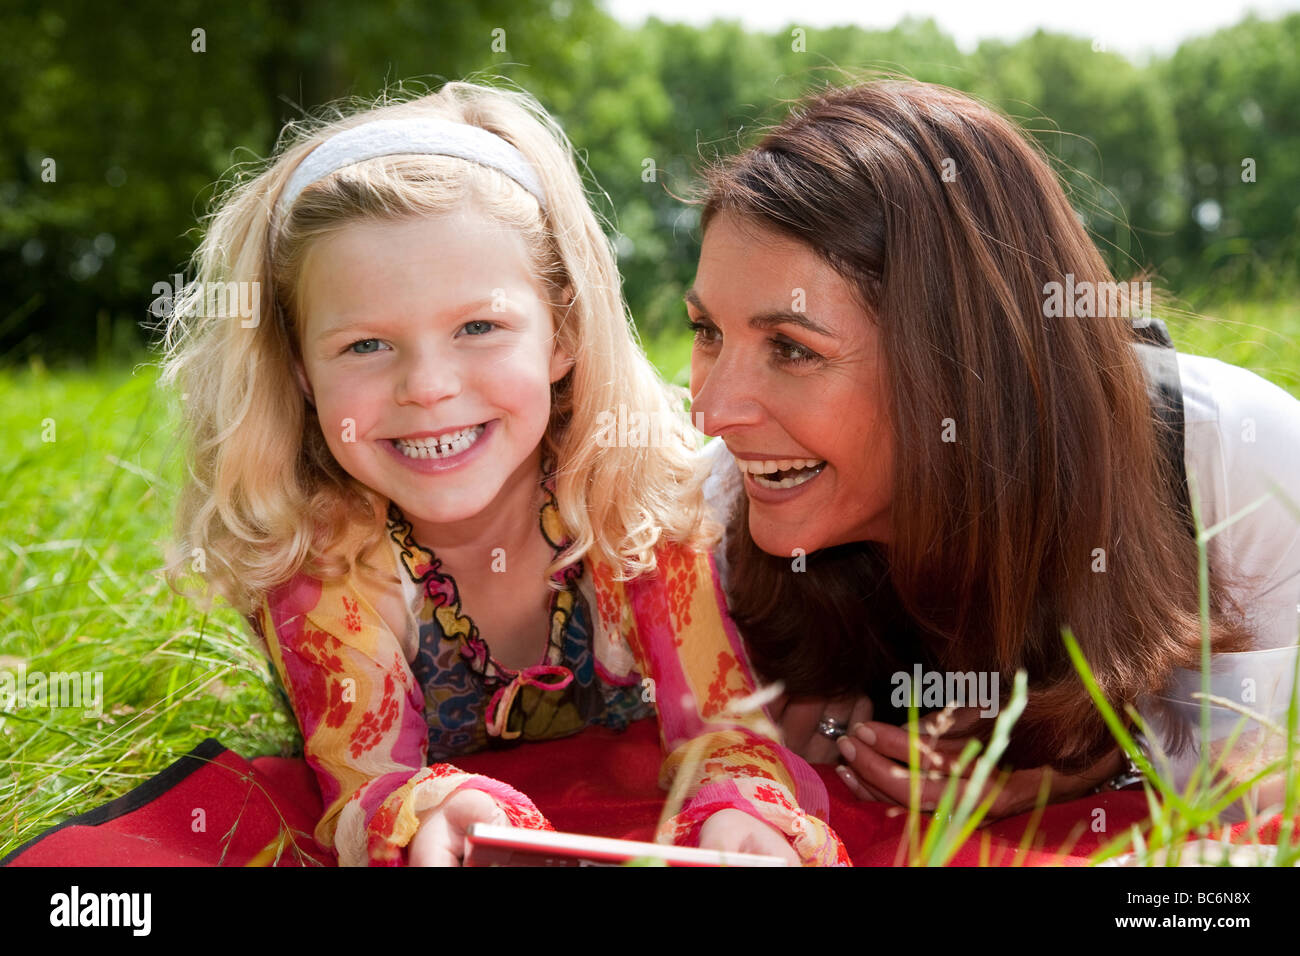 Mother and daughter outdoors together having fun and laughing - Stock Image